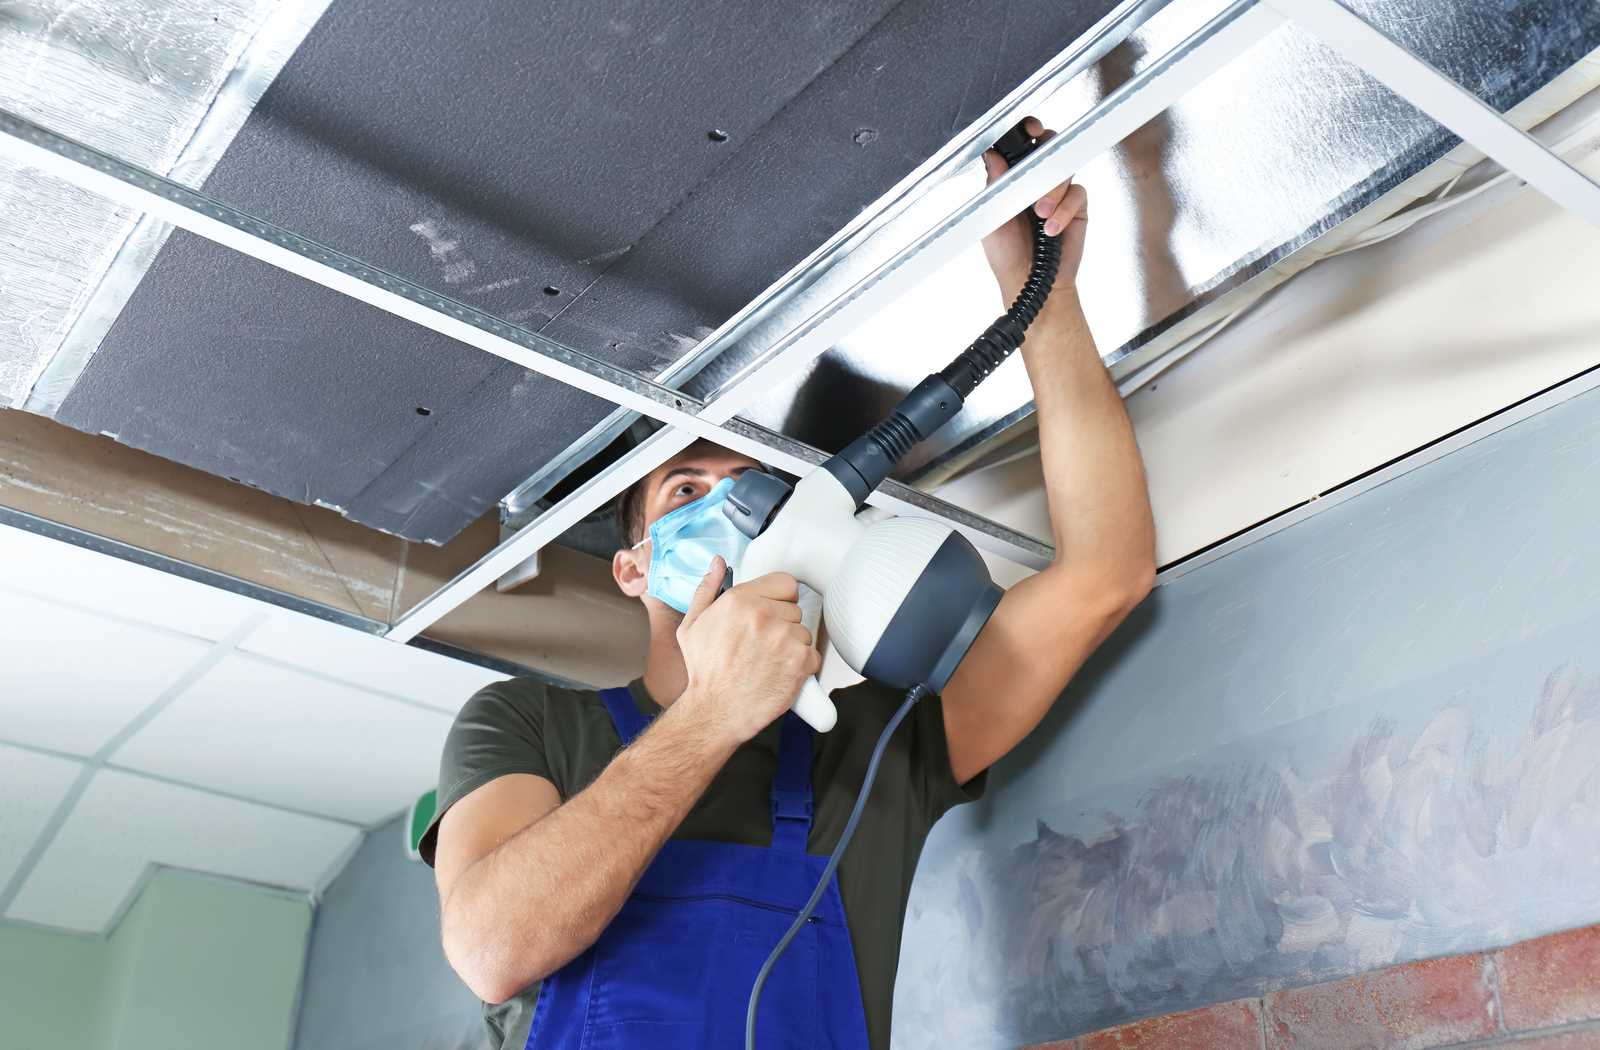 Technician in blue coveralls cleaning a home's ductwork